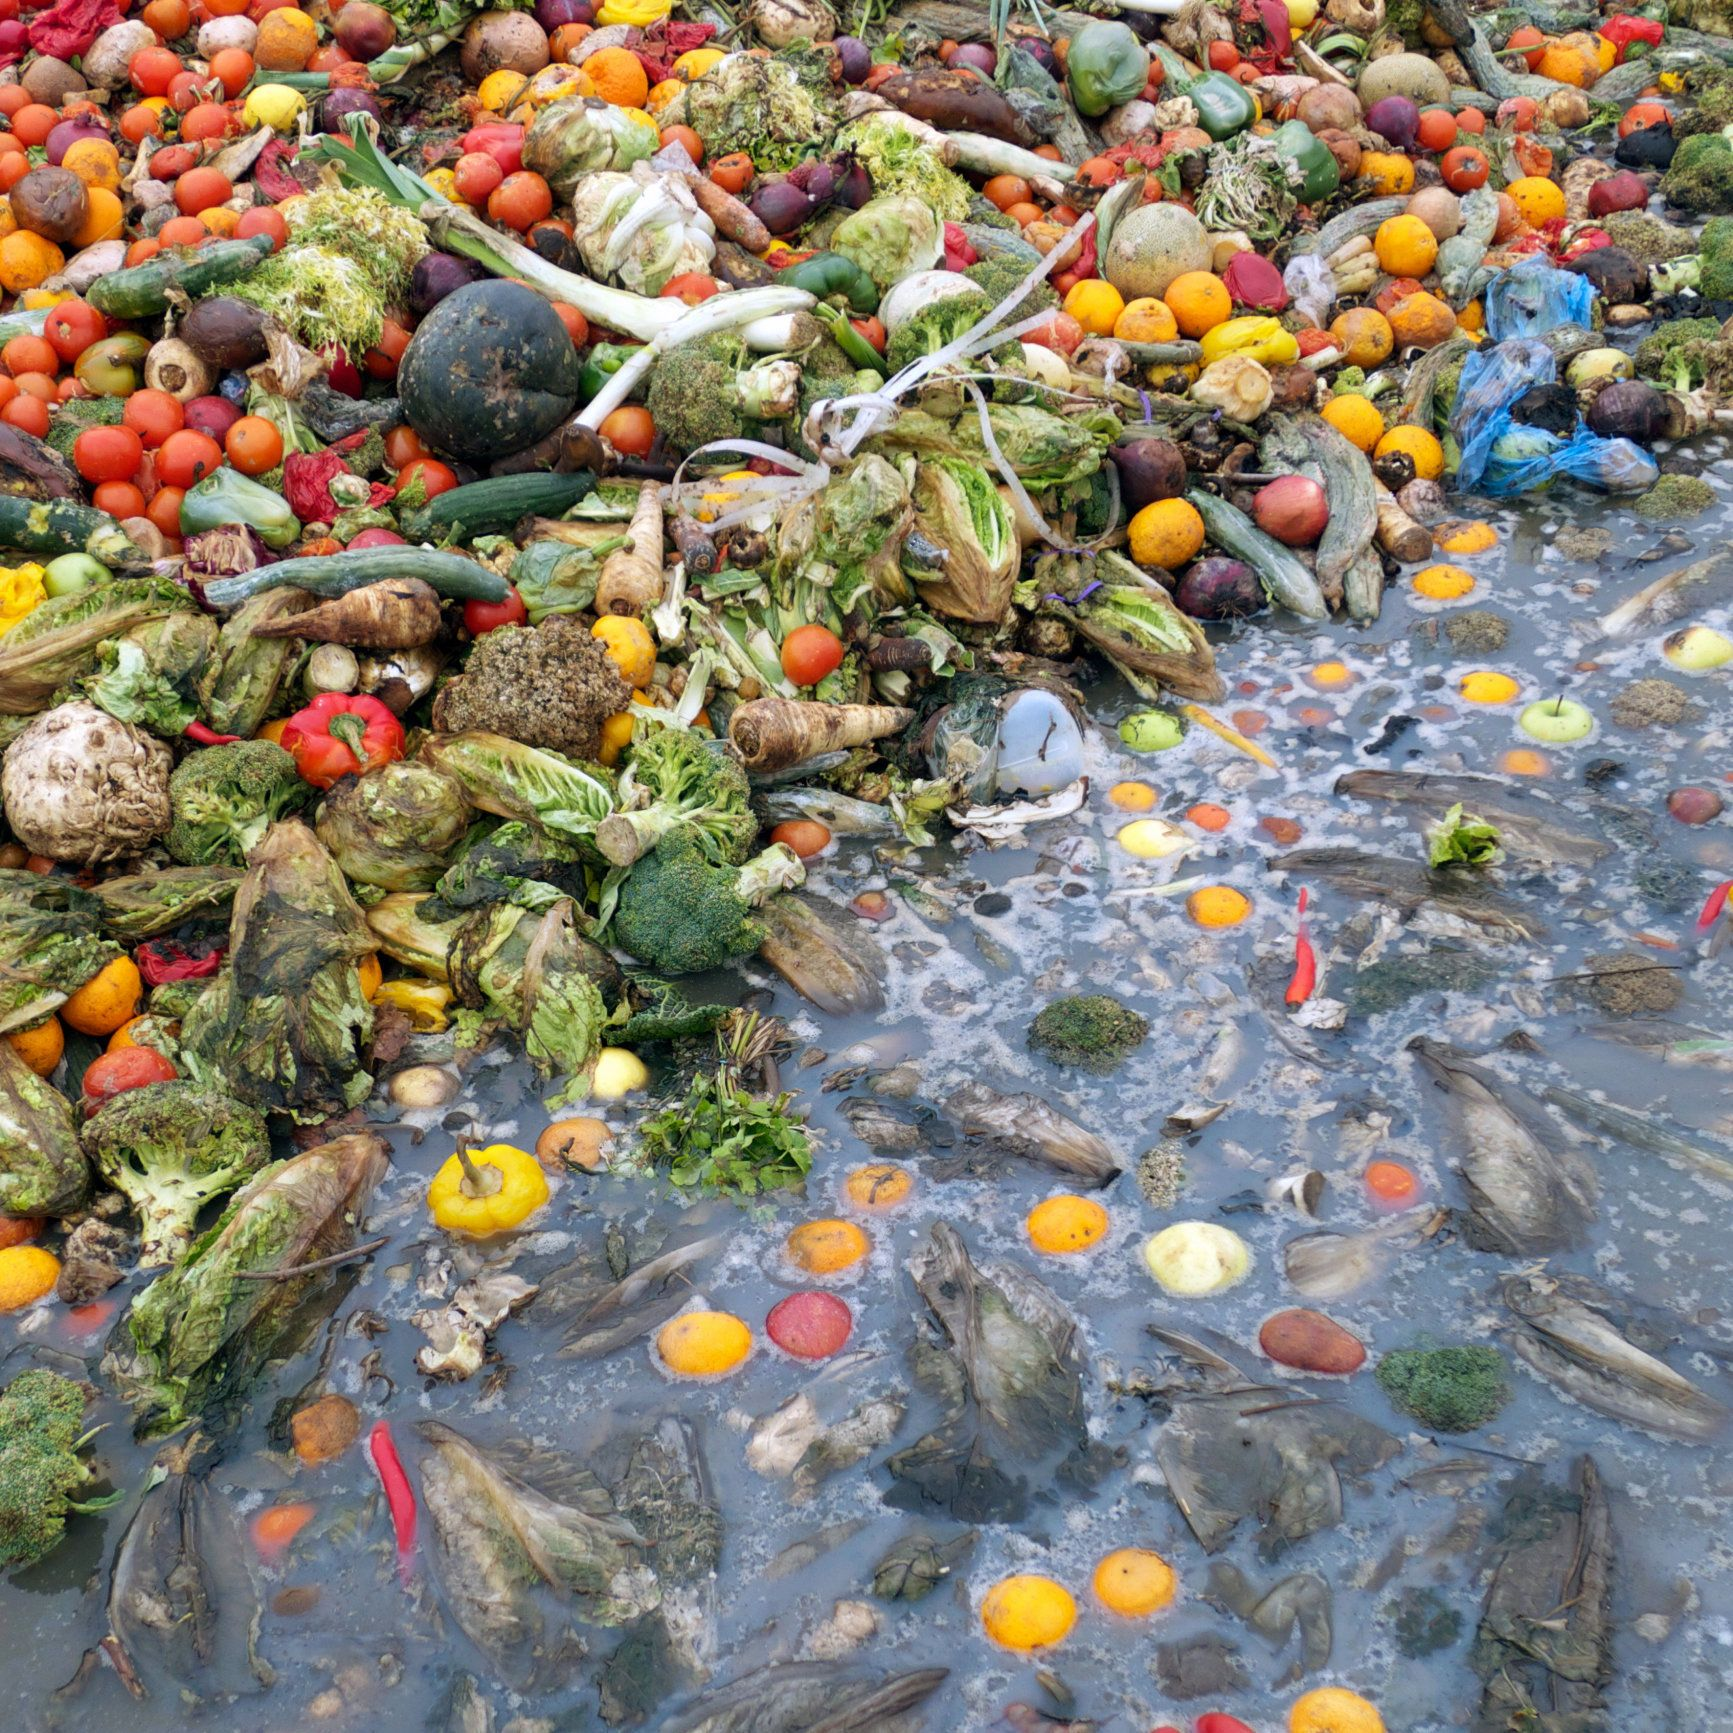 Large pile of discarded fruit and vegetables, some floating in water.